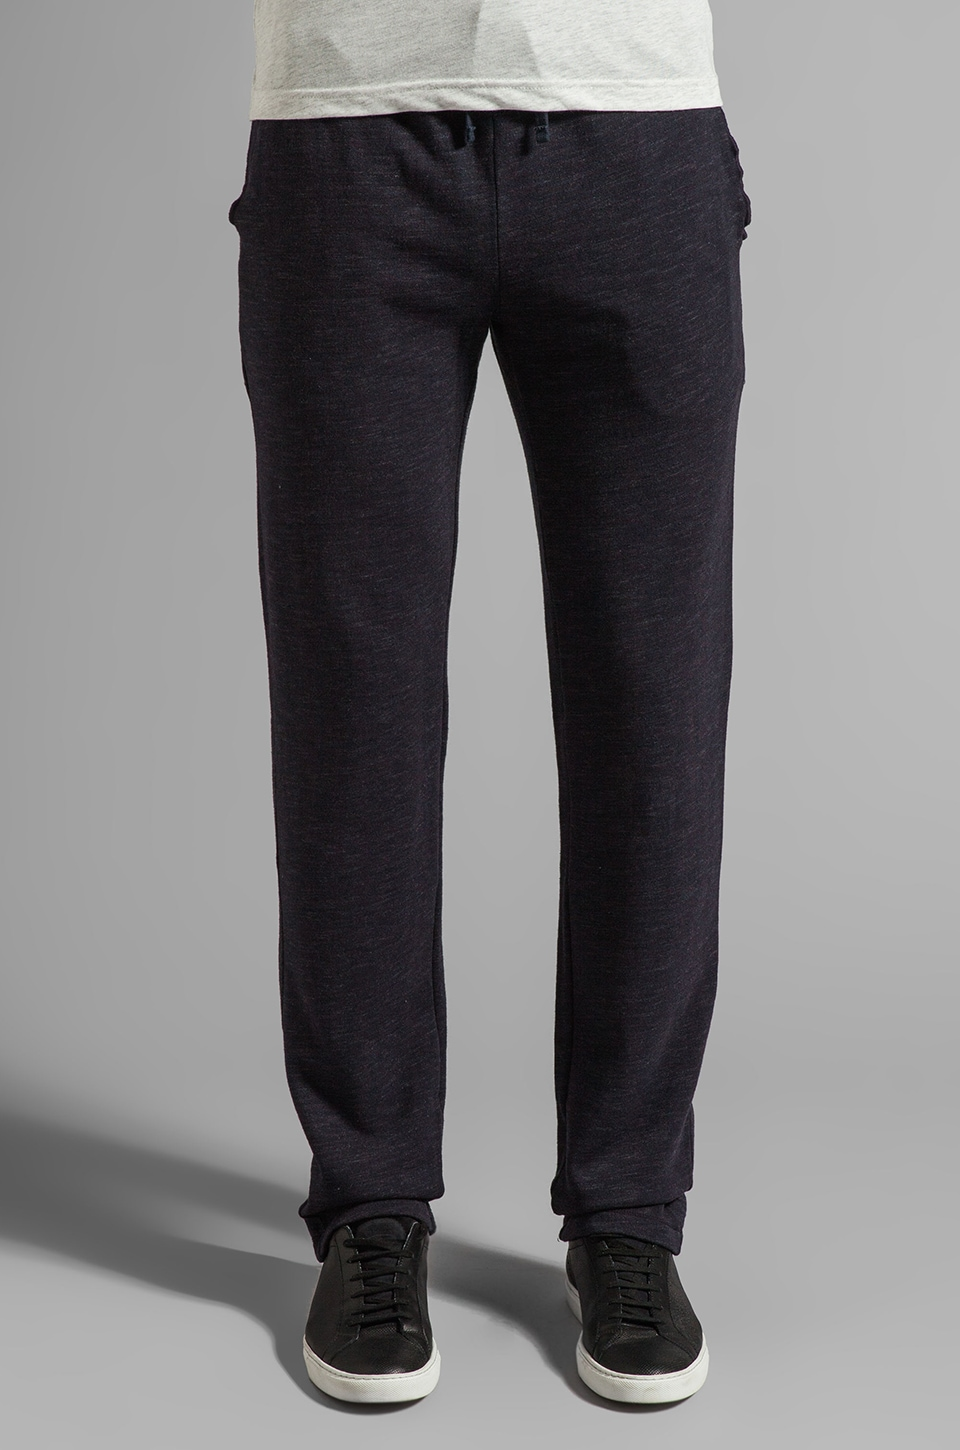 Velvet by Graham & Spencer Reginald Marble Fleece Sweatpant in Caspian